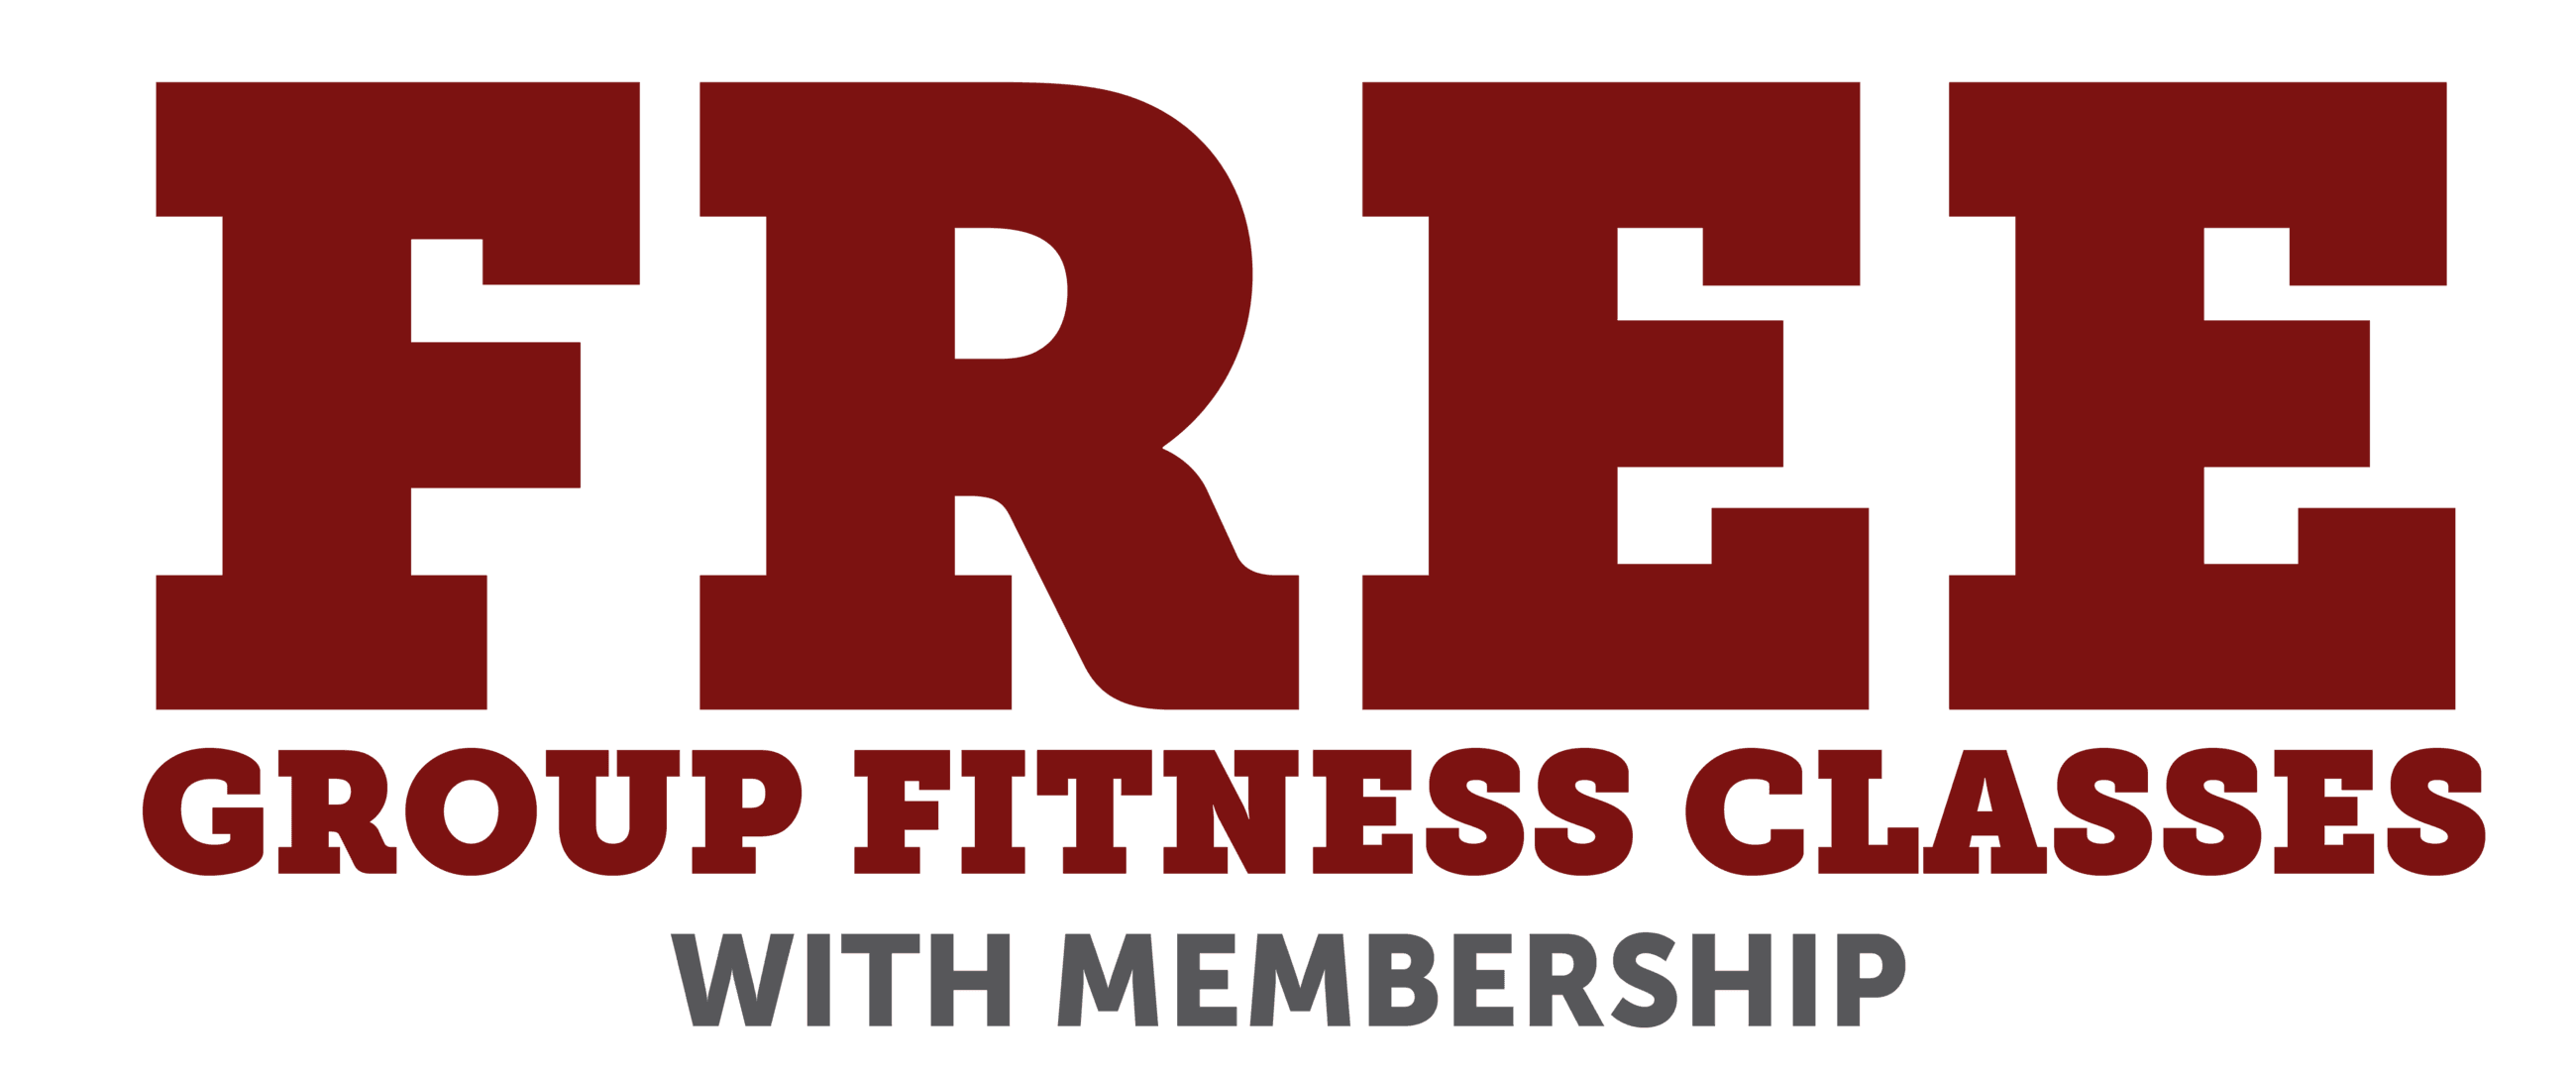 Free Group Fitness Classes With Membership